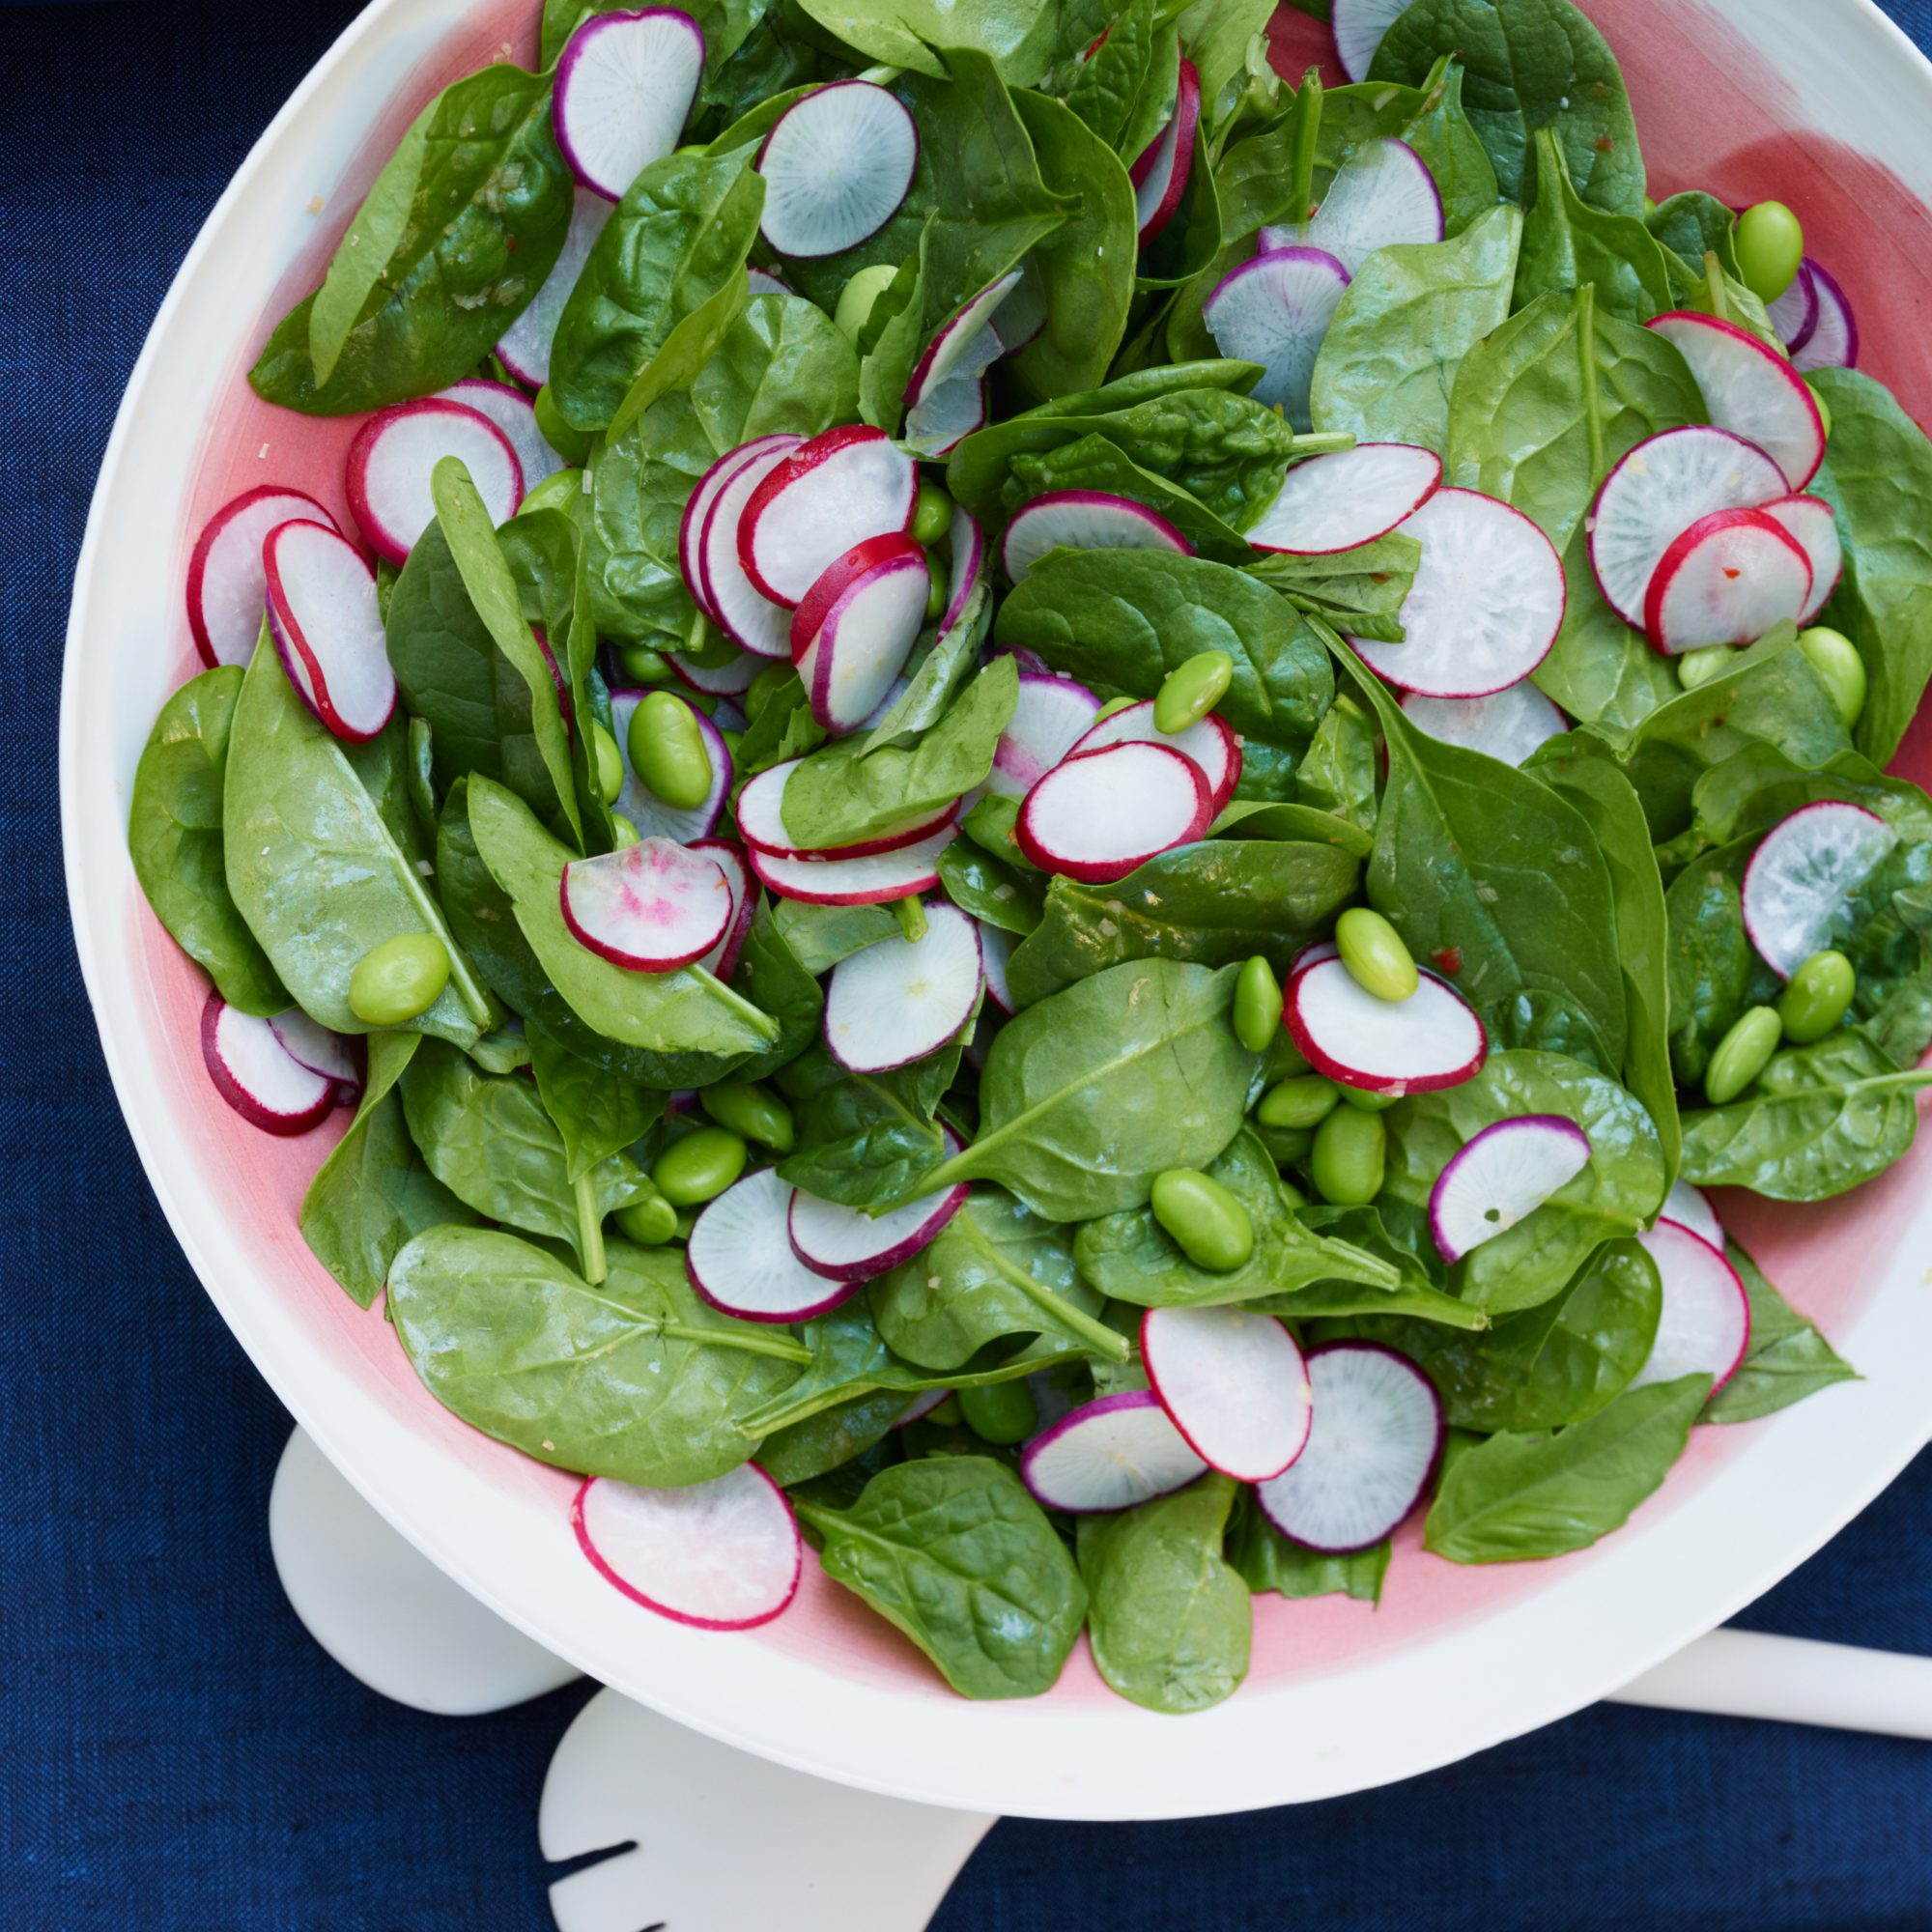 original-201307-r-spinach-and-edamame-salad-with-basil-and-asian-dressing.jpg